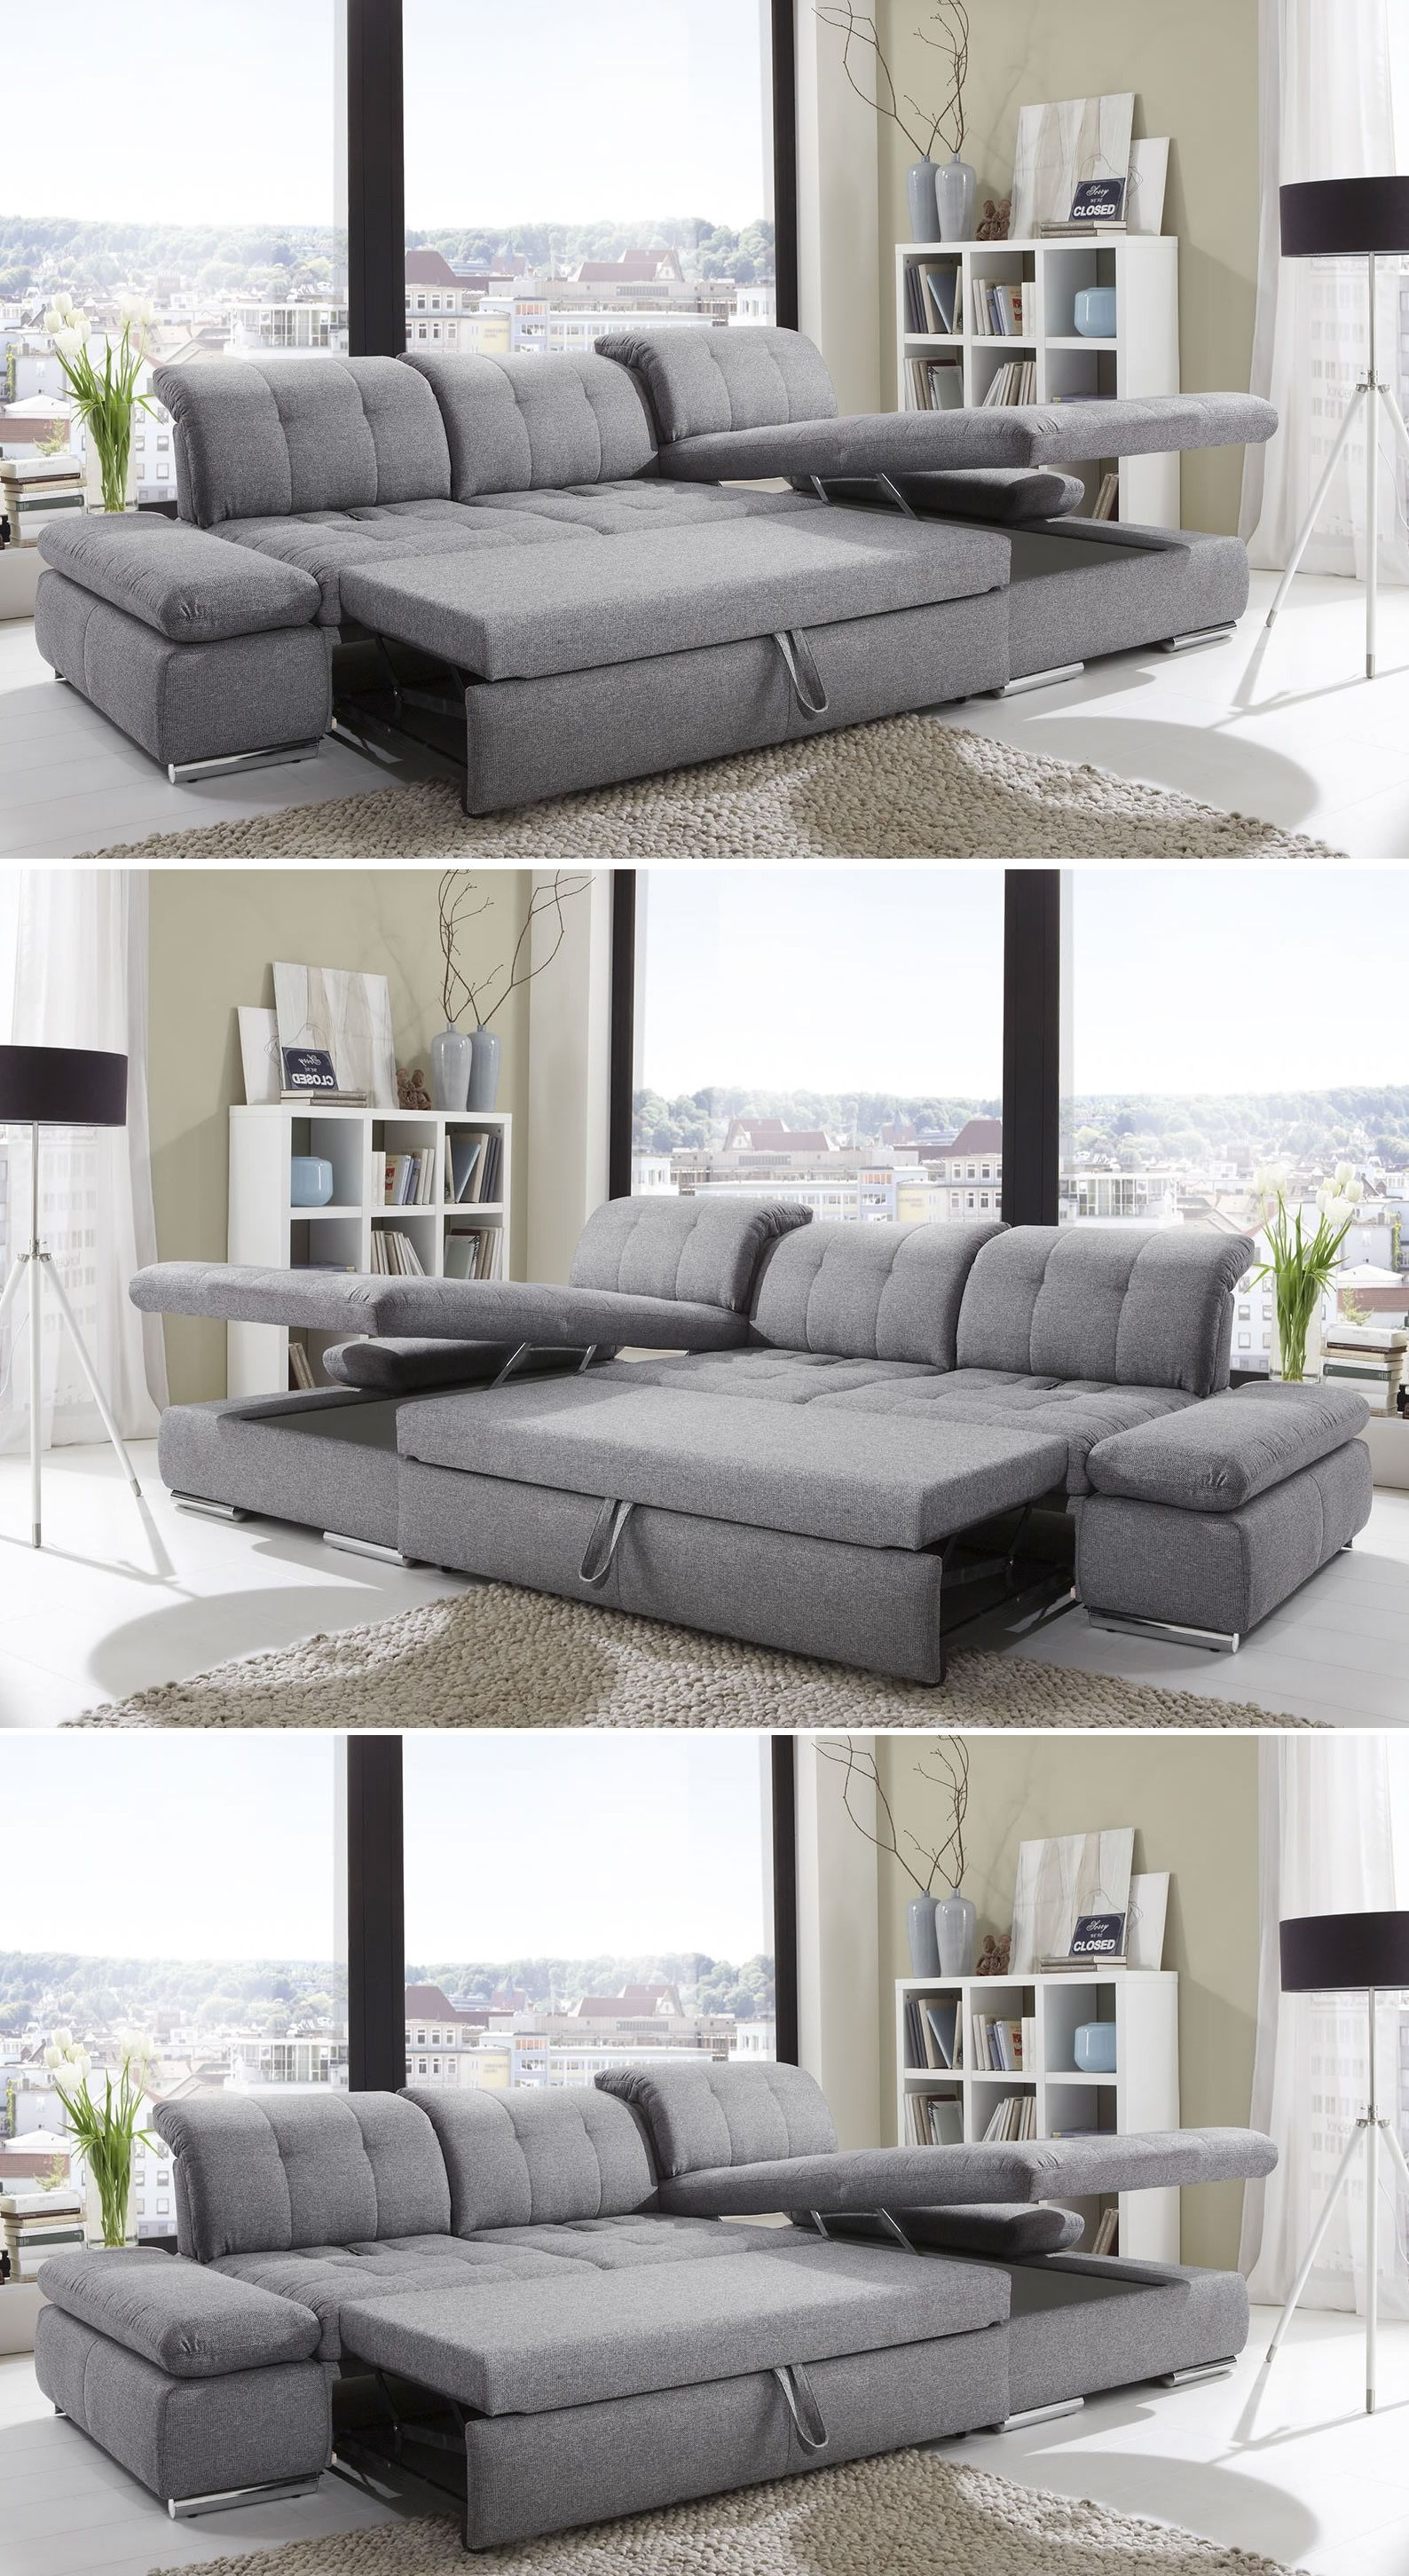 Sleeper Sofa Designs, Trends and Ideas 2019 / 2020 ...